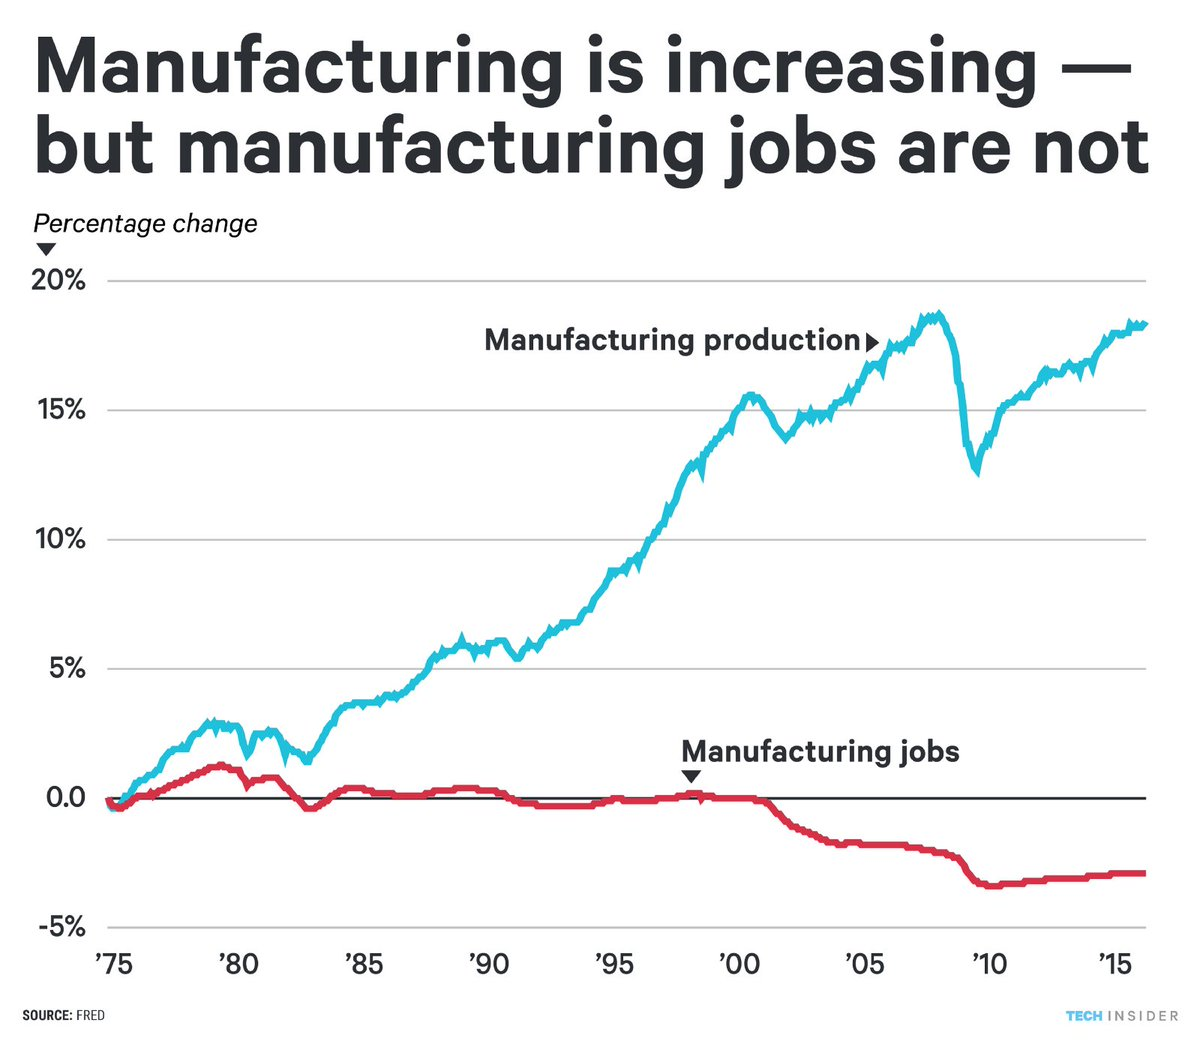 #Manufacturing in #USA since 1975: Production increased a lot but number of workers declined a bit (in total numbers). The remaining manufacturing workers are highly skilled and operate more complex machinery. Similar picture in #Australia. Source:  https:// buff.ly/2mTqlEF  &nbsp;  <br>http://pic.twitter.com/A1y7tDiDEk